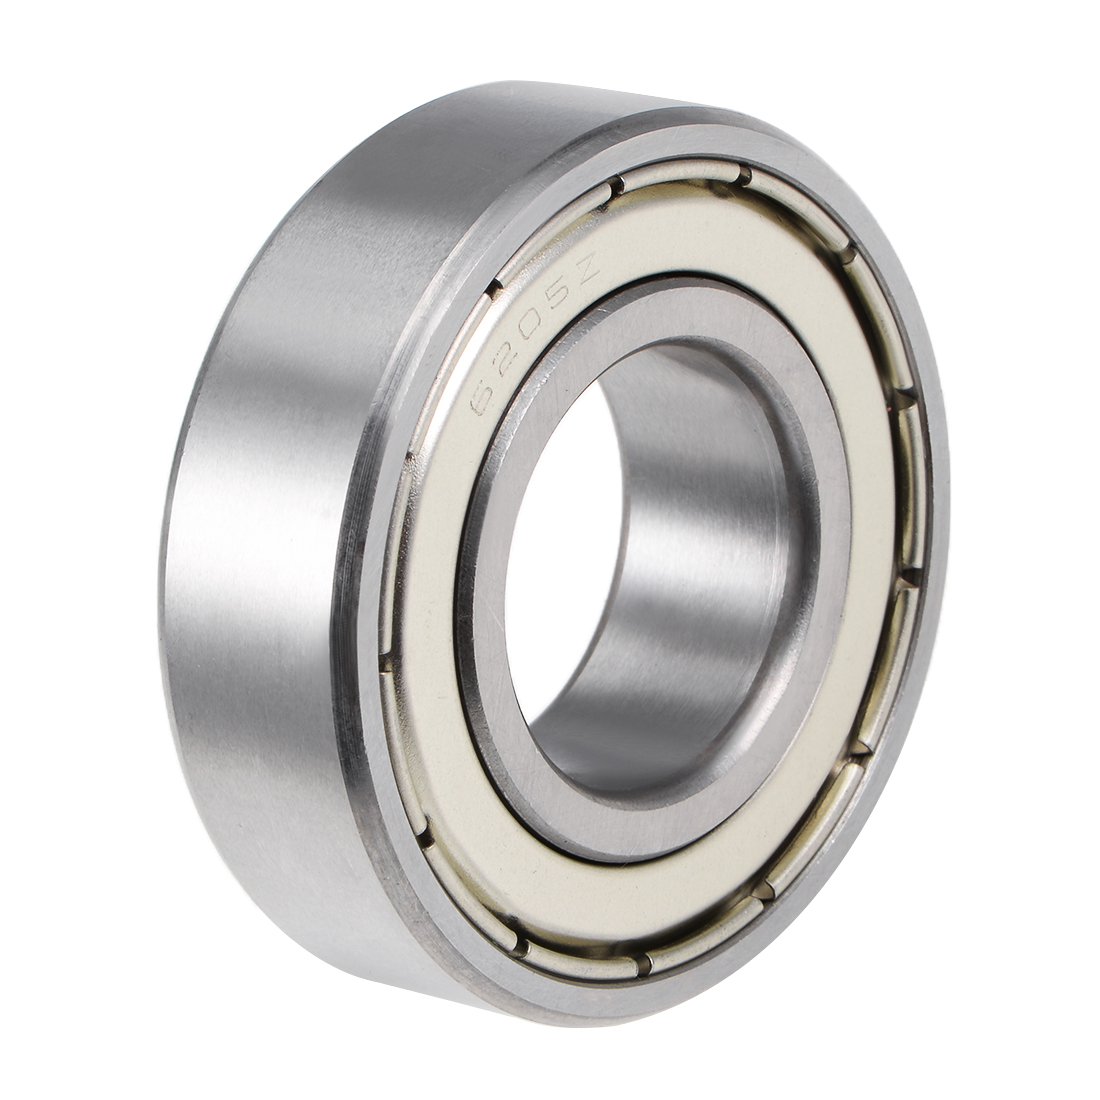 6205ZZ Ball Bearing 25x52x15mm Double Shielded ABEC-1 Bearings